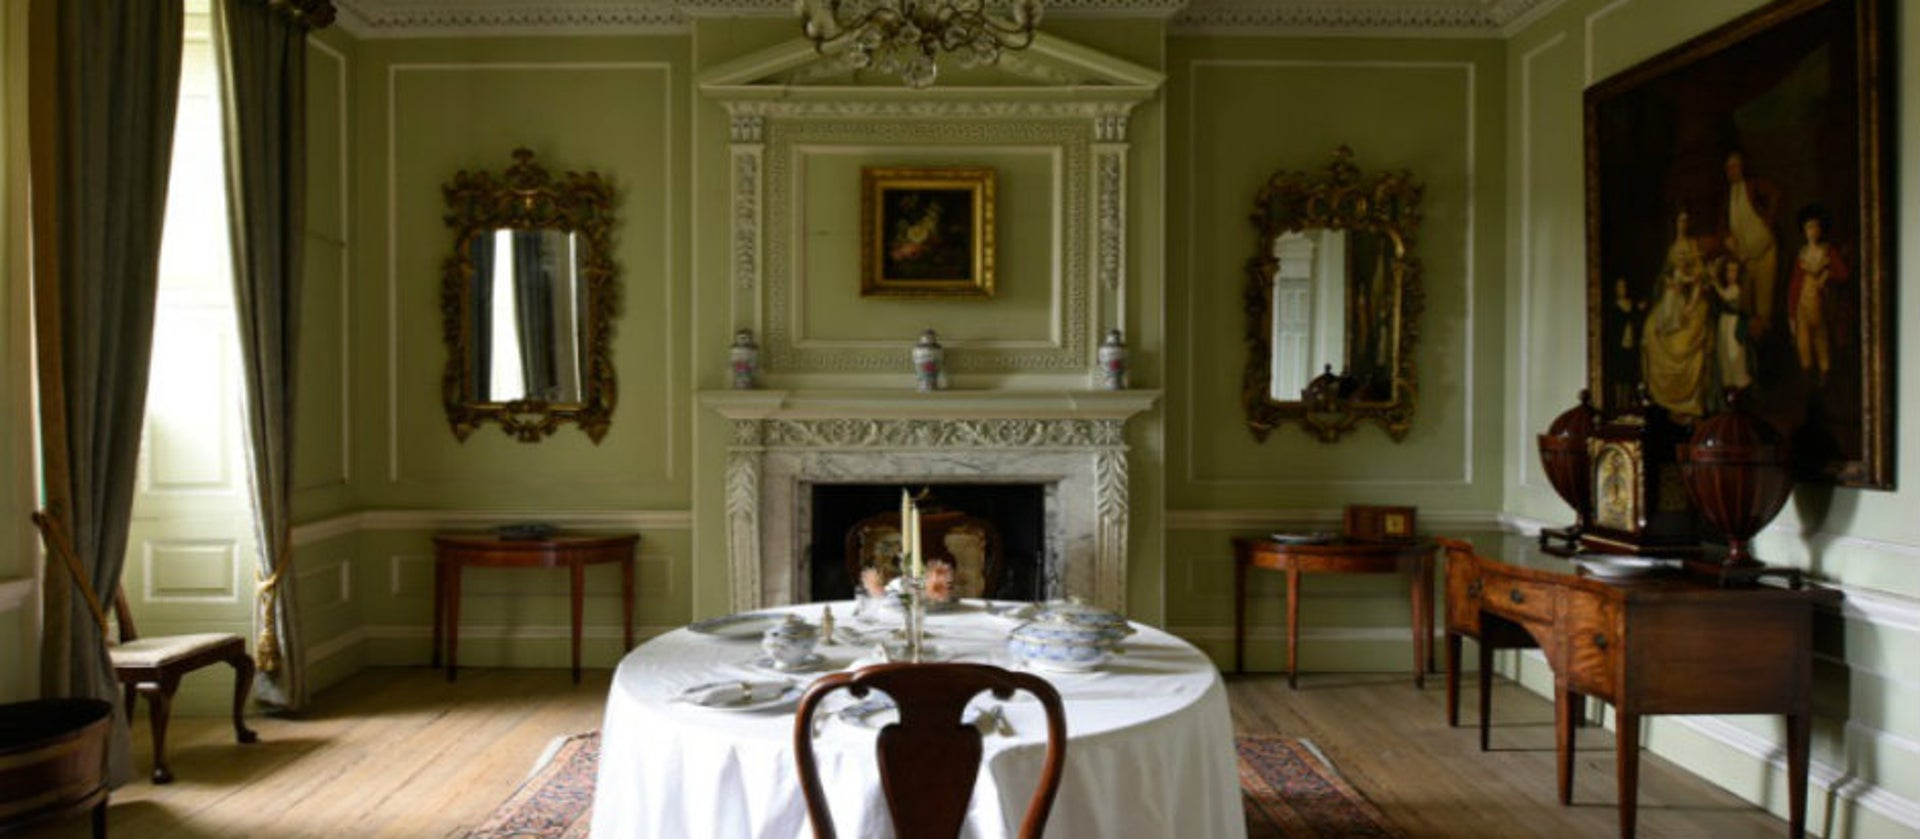 Georgian style house interior design | National Trust